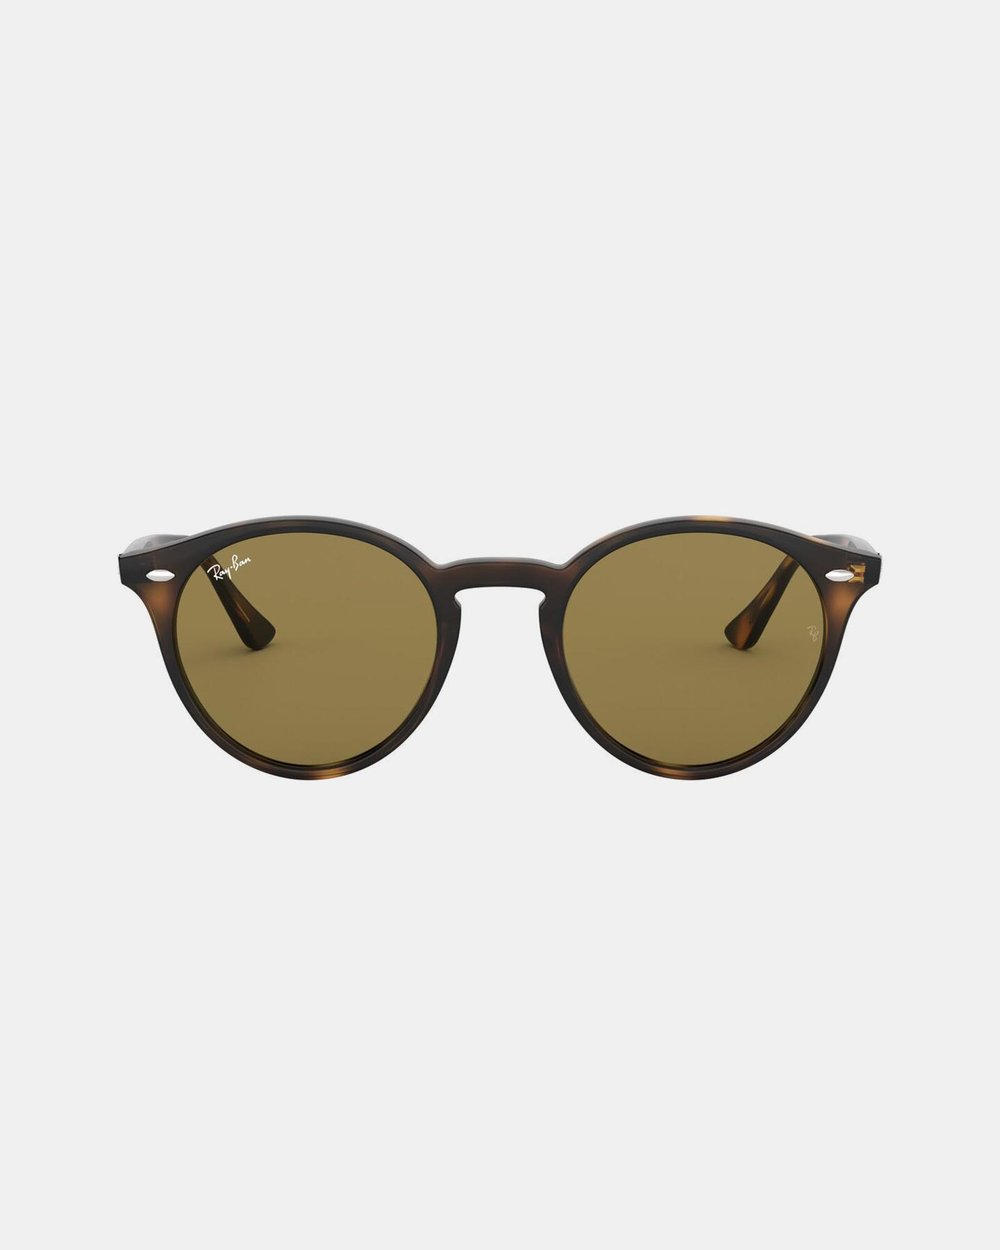 96cbb67444 RB2180 by Ray-Ban Online